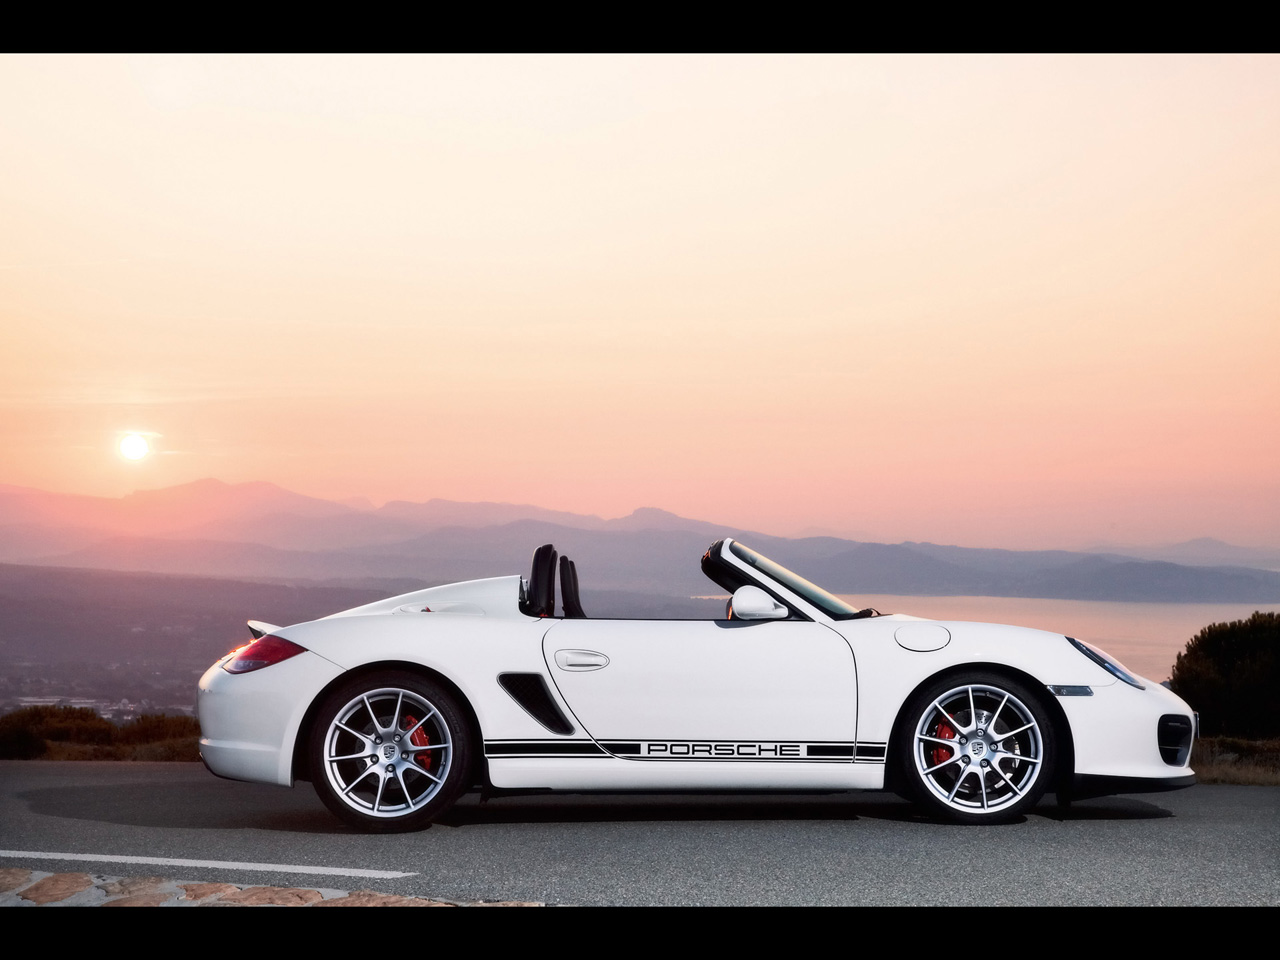 Cost To Repaint A Car >> Dimesnions for side stripes needed asap! - Rennlist - Porsche Discussion Forums